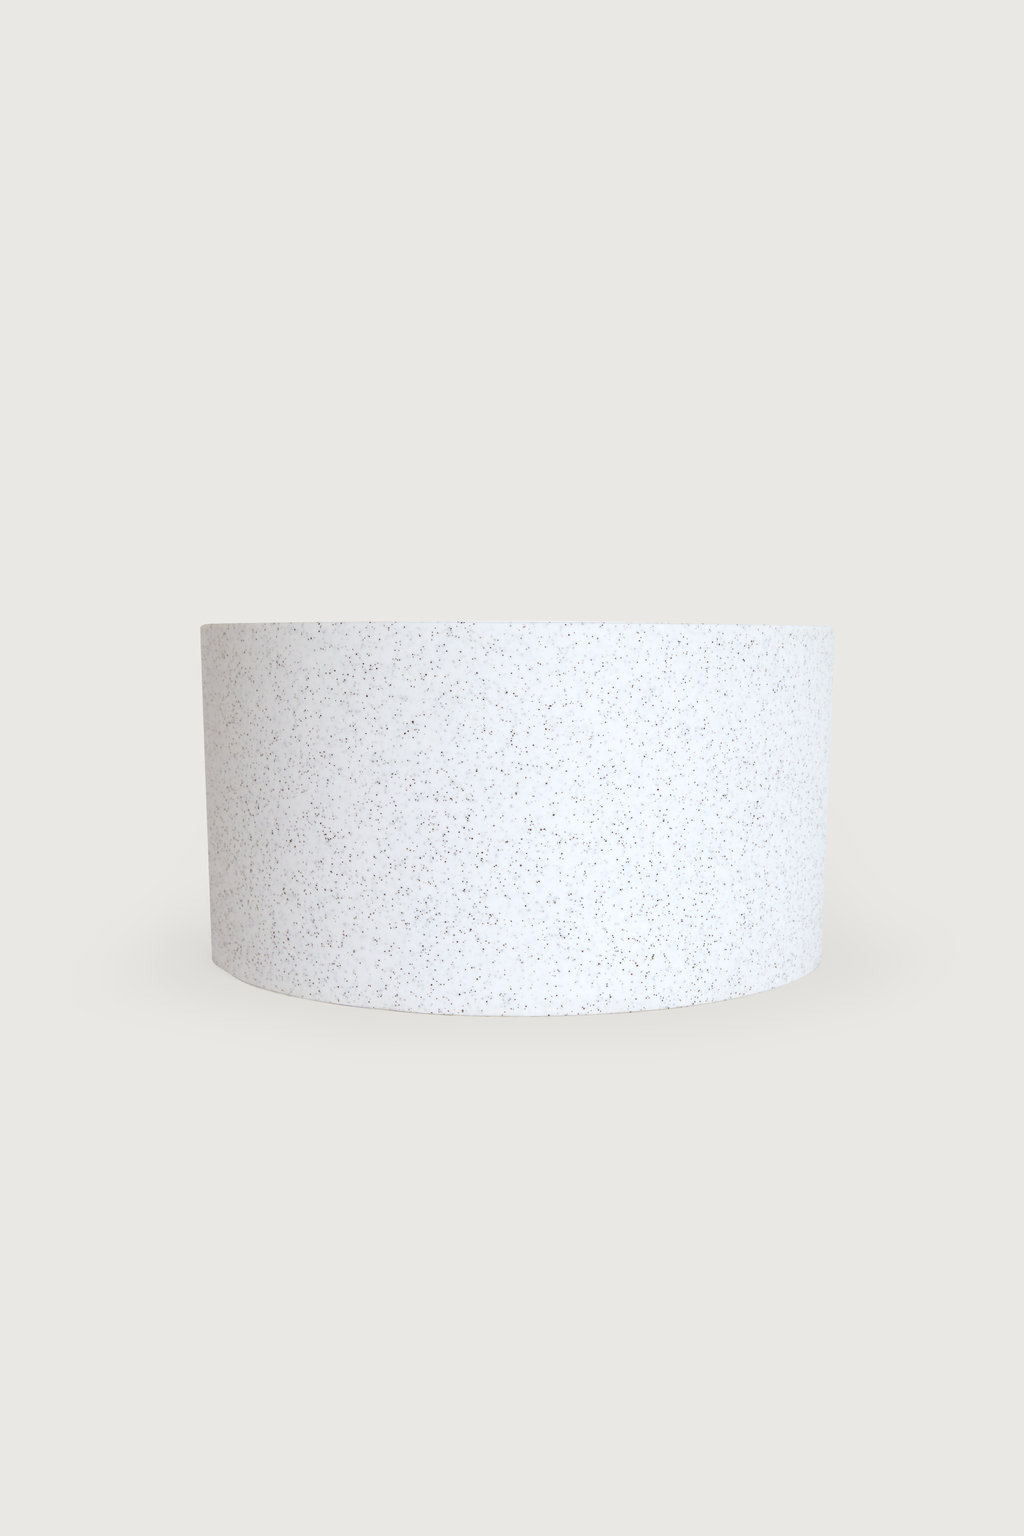 Wide Ceramic Planter 2947 White Speckeled 5